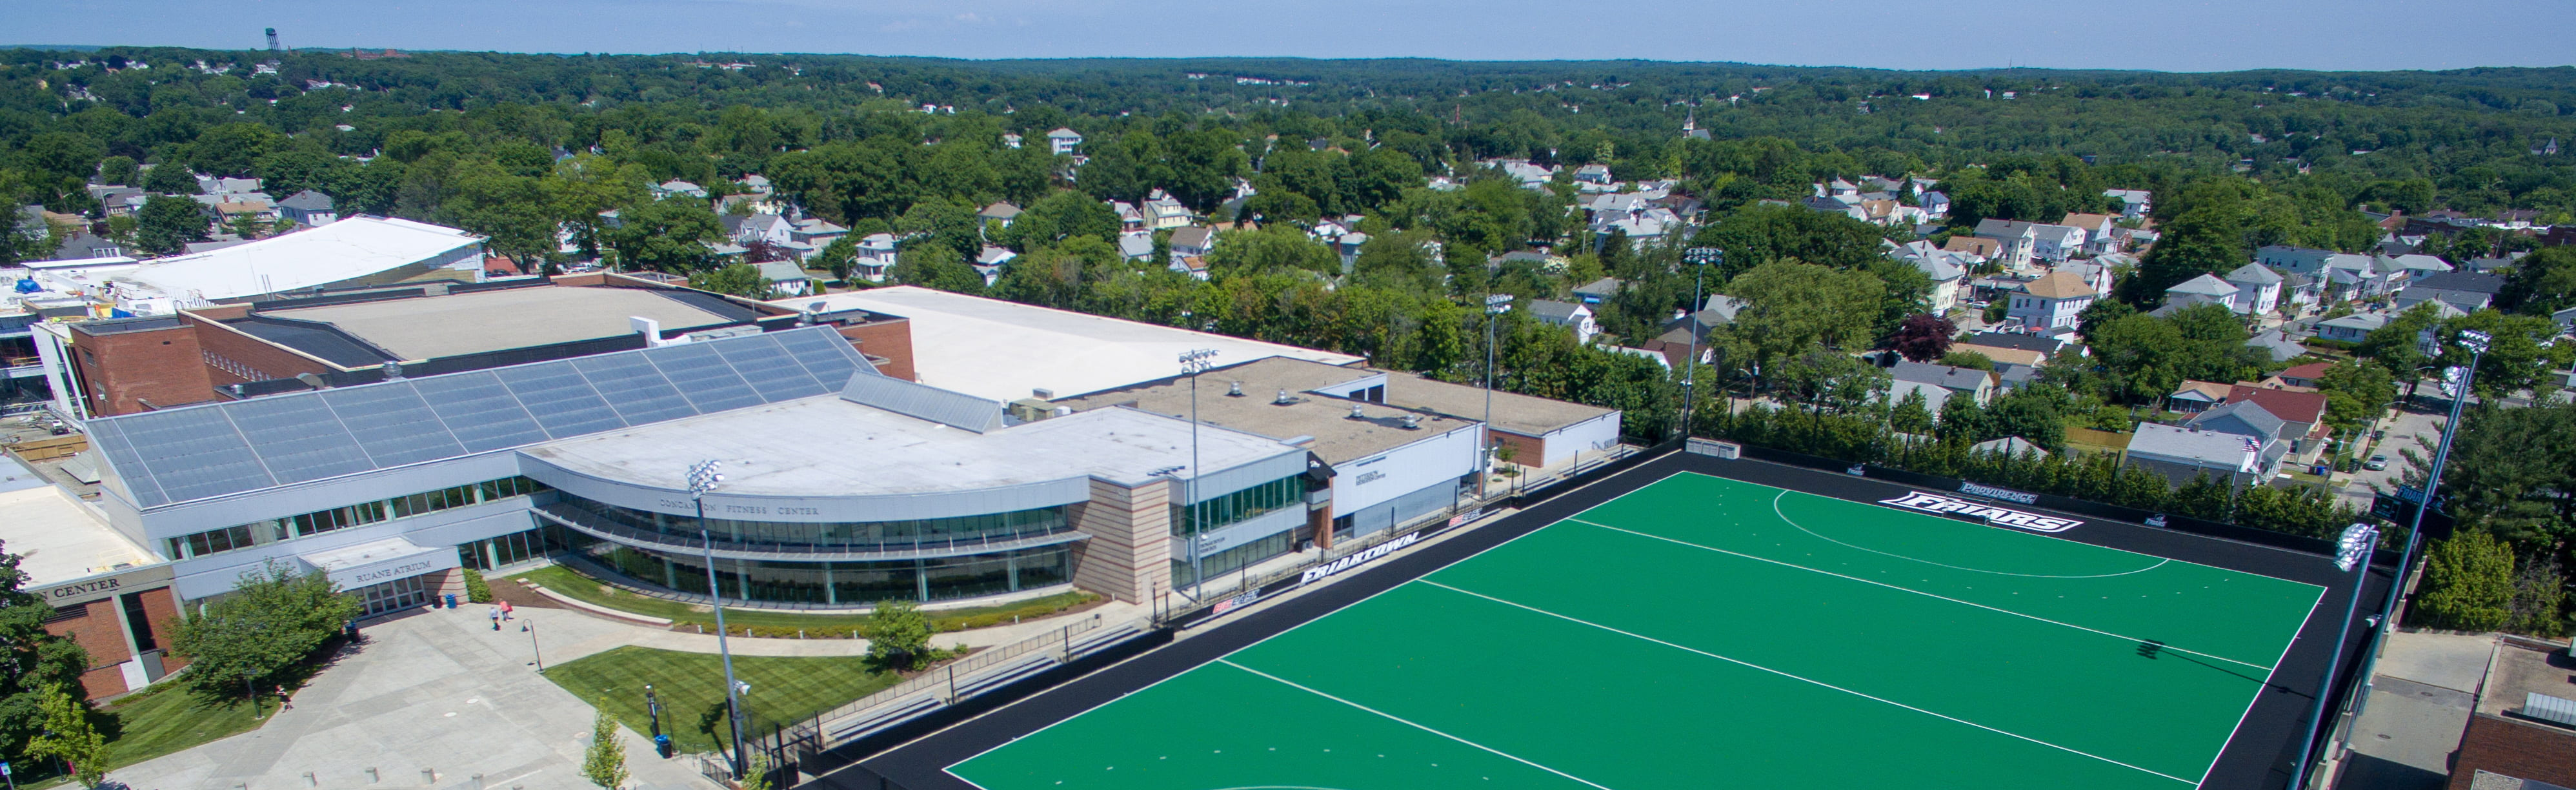 aerial photo of concannon fitness center and lennon field